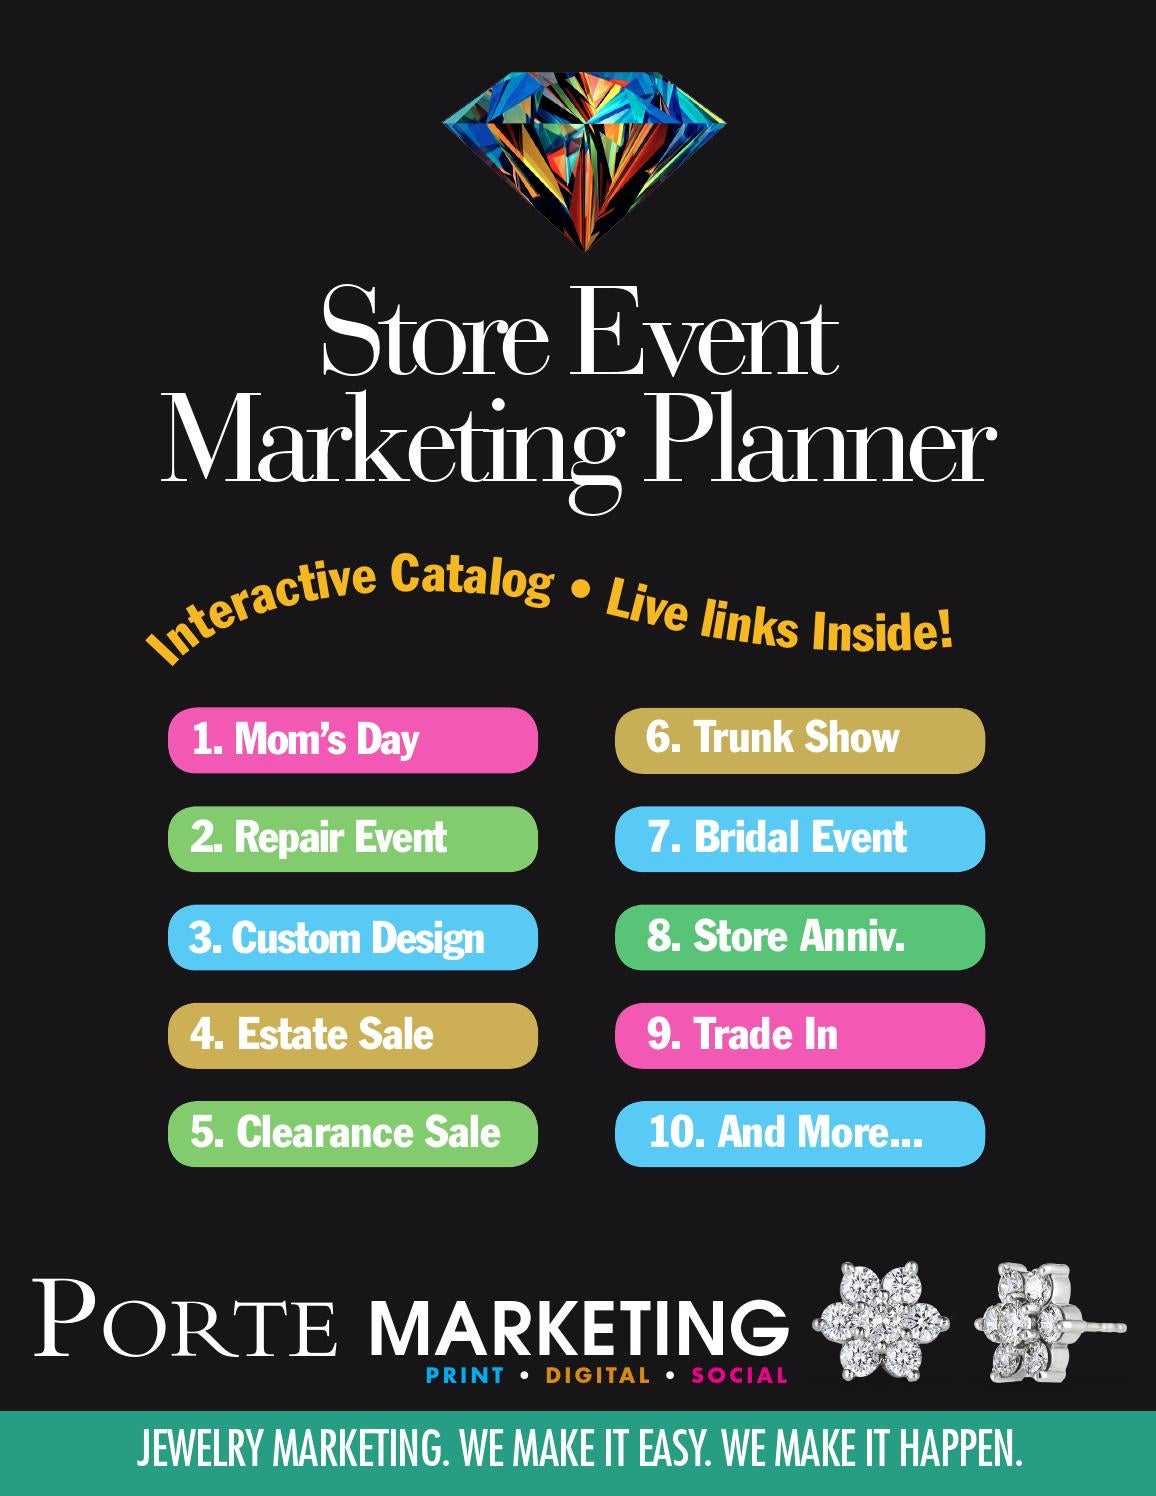 2016 porte store event marketing planner by james porte